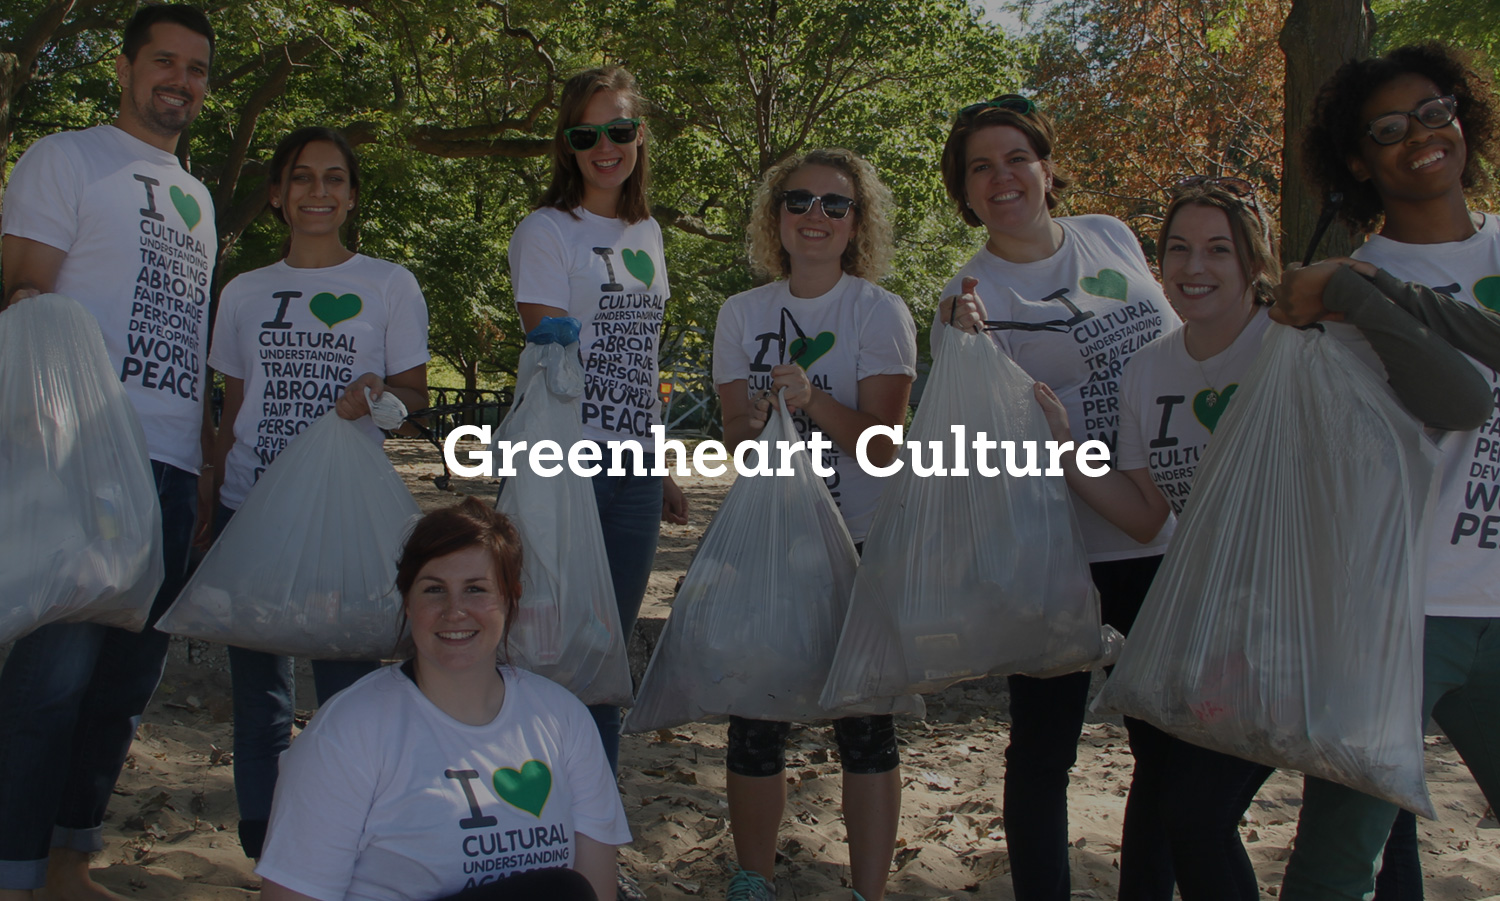 impact-report-2016-GreenheartCulture.jpg